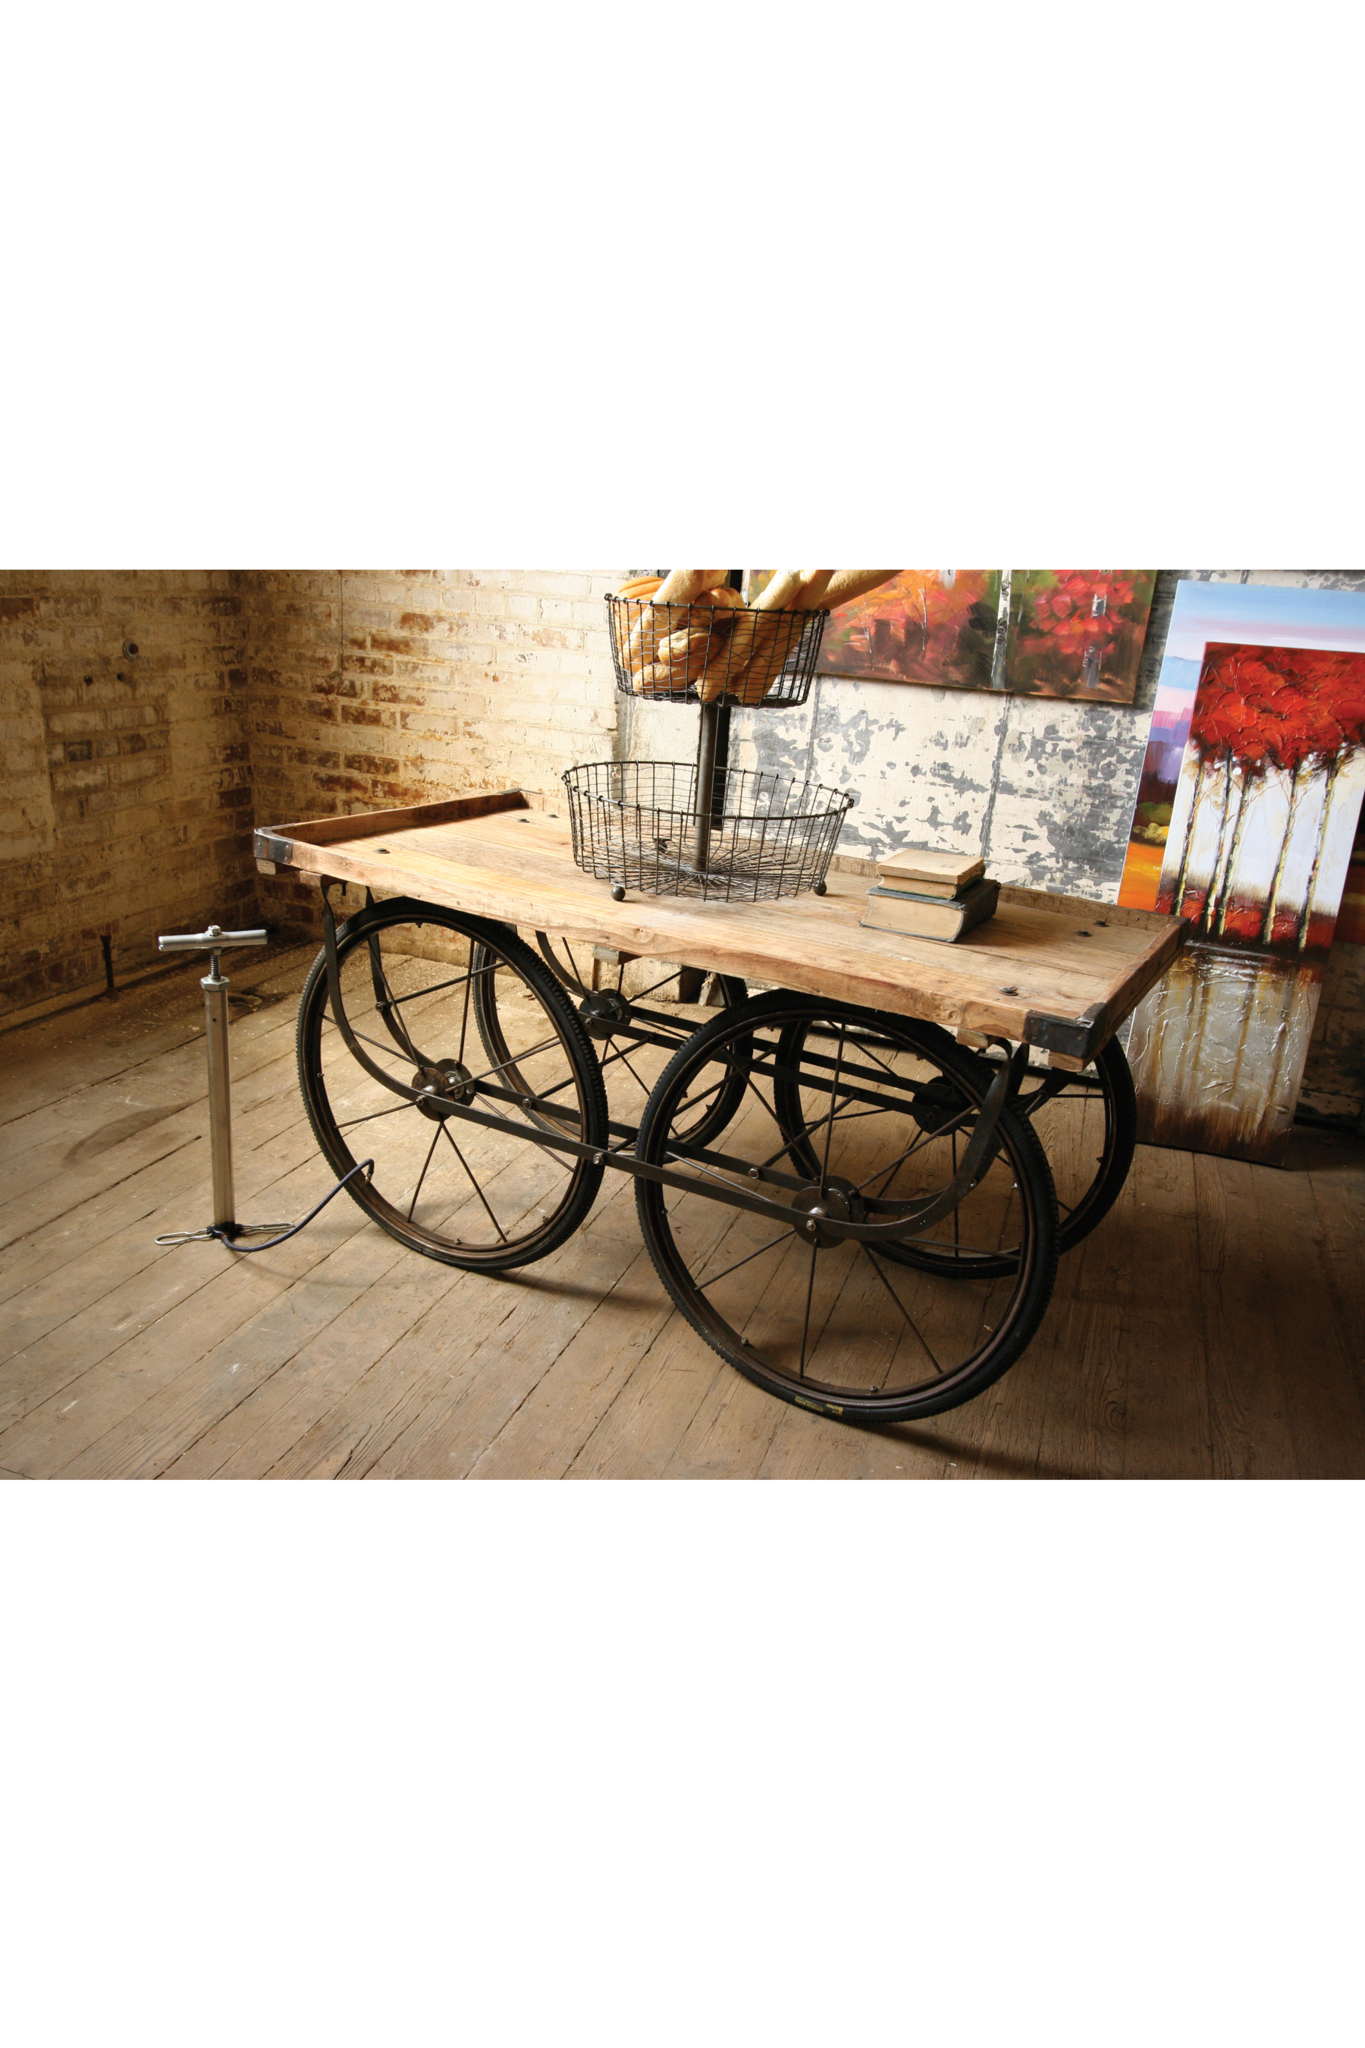 RECYCLED WOOD AND IRON ROLLING VENDOR CART WITH BICYCLE TIRE PUMP